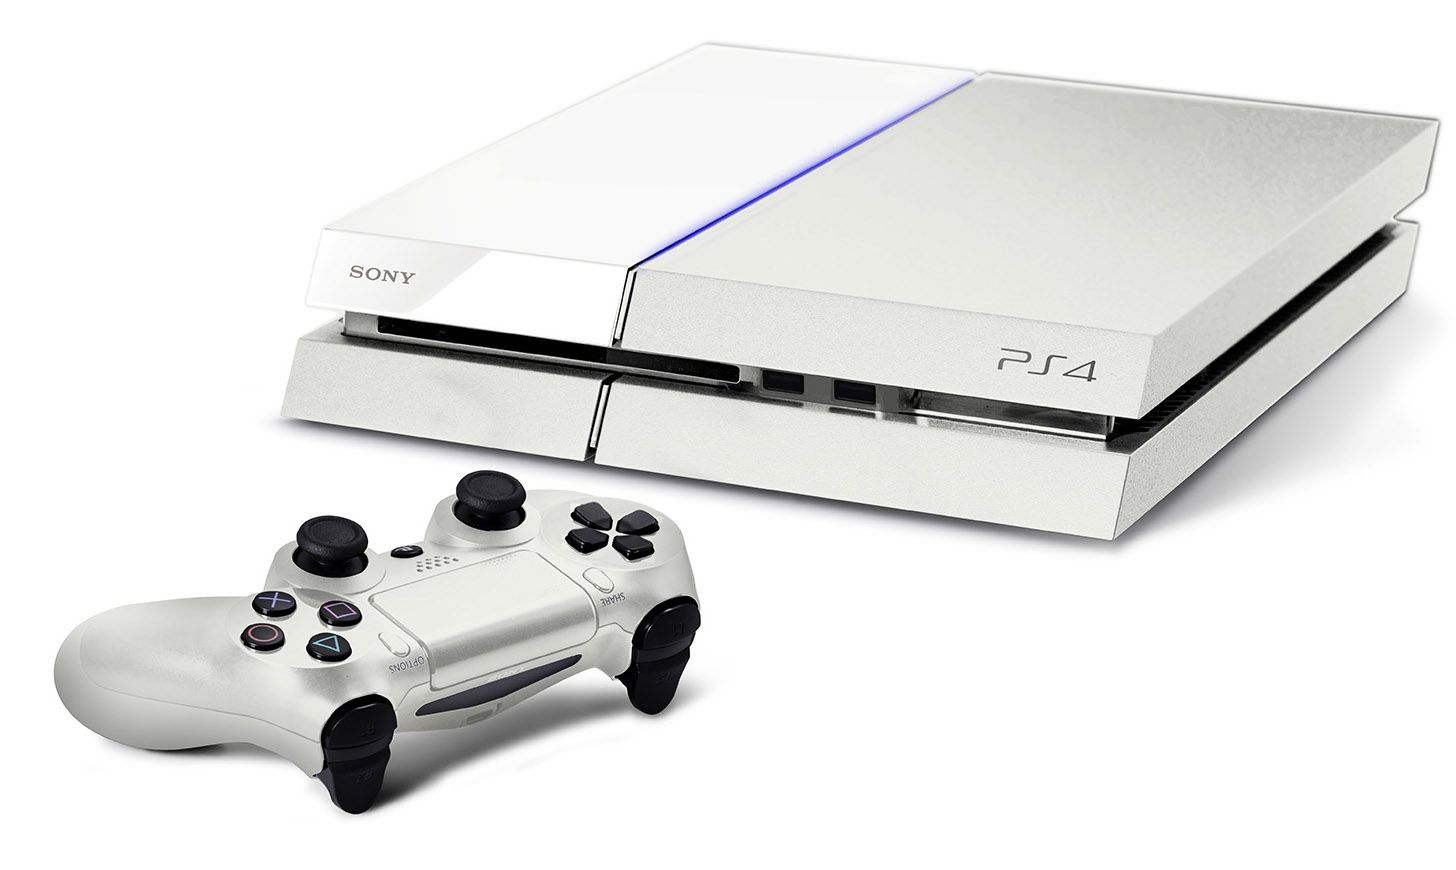 Ps4 White Playstation 4 Console Ps4 White Playstation 4 How to read videos on ps4